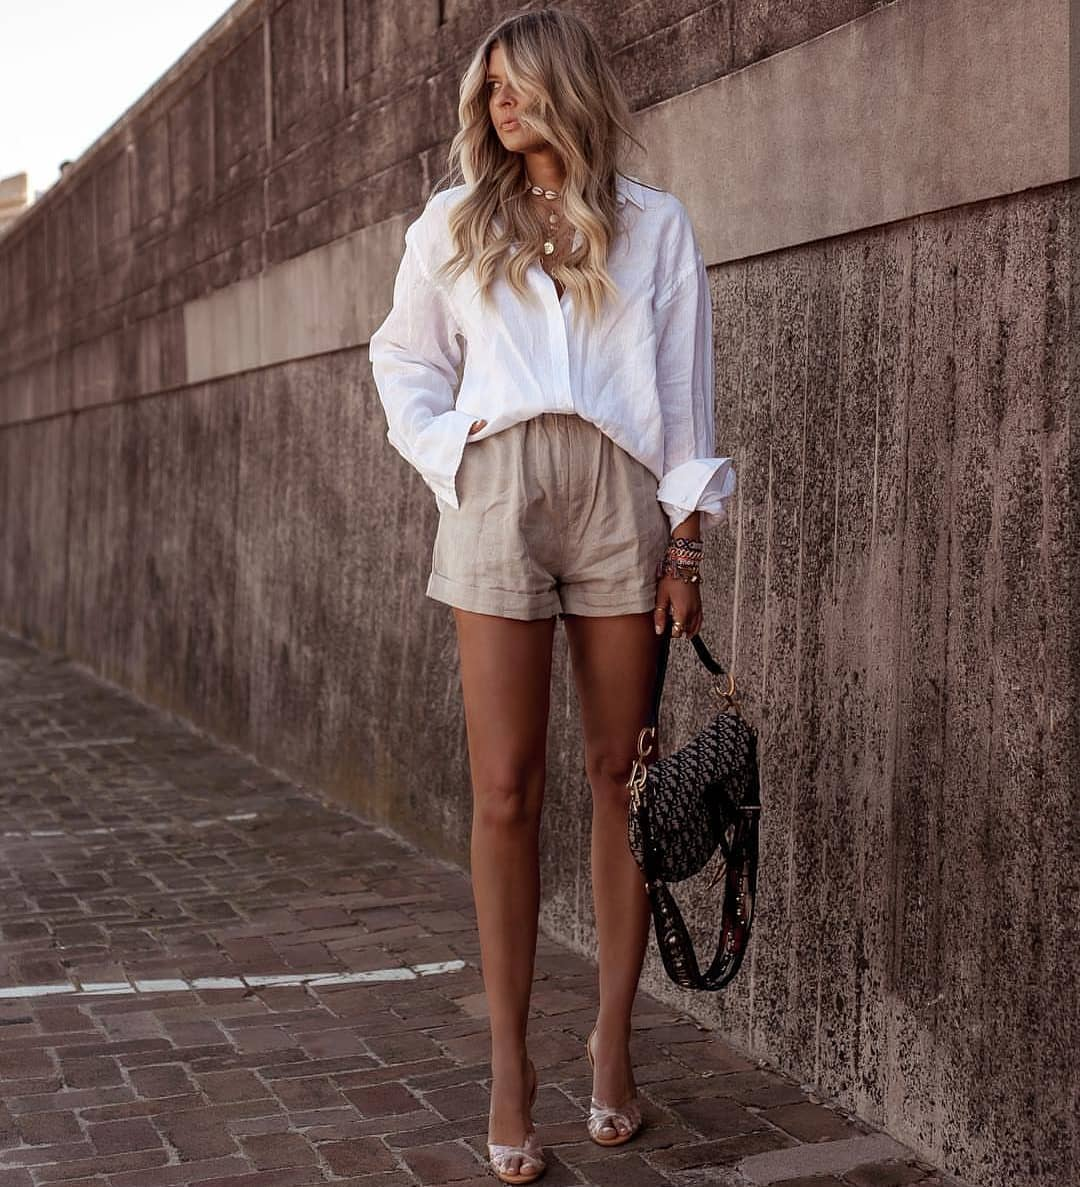 Oversized Shirt In White And Beige Shorts For Summer 2019